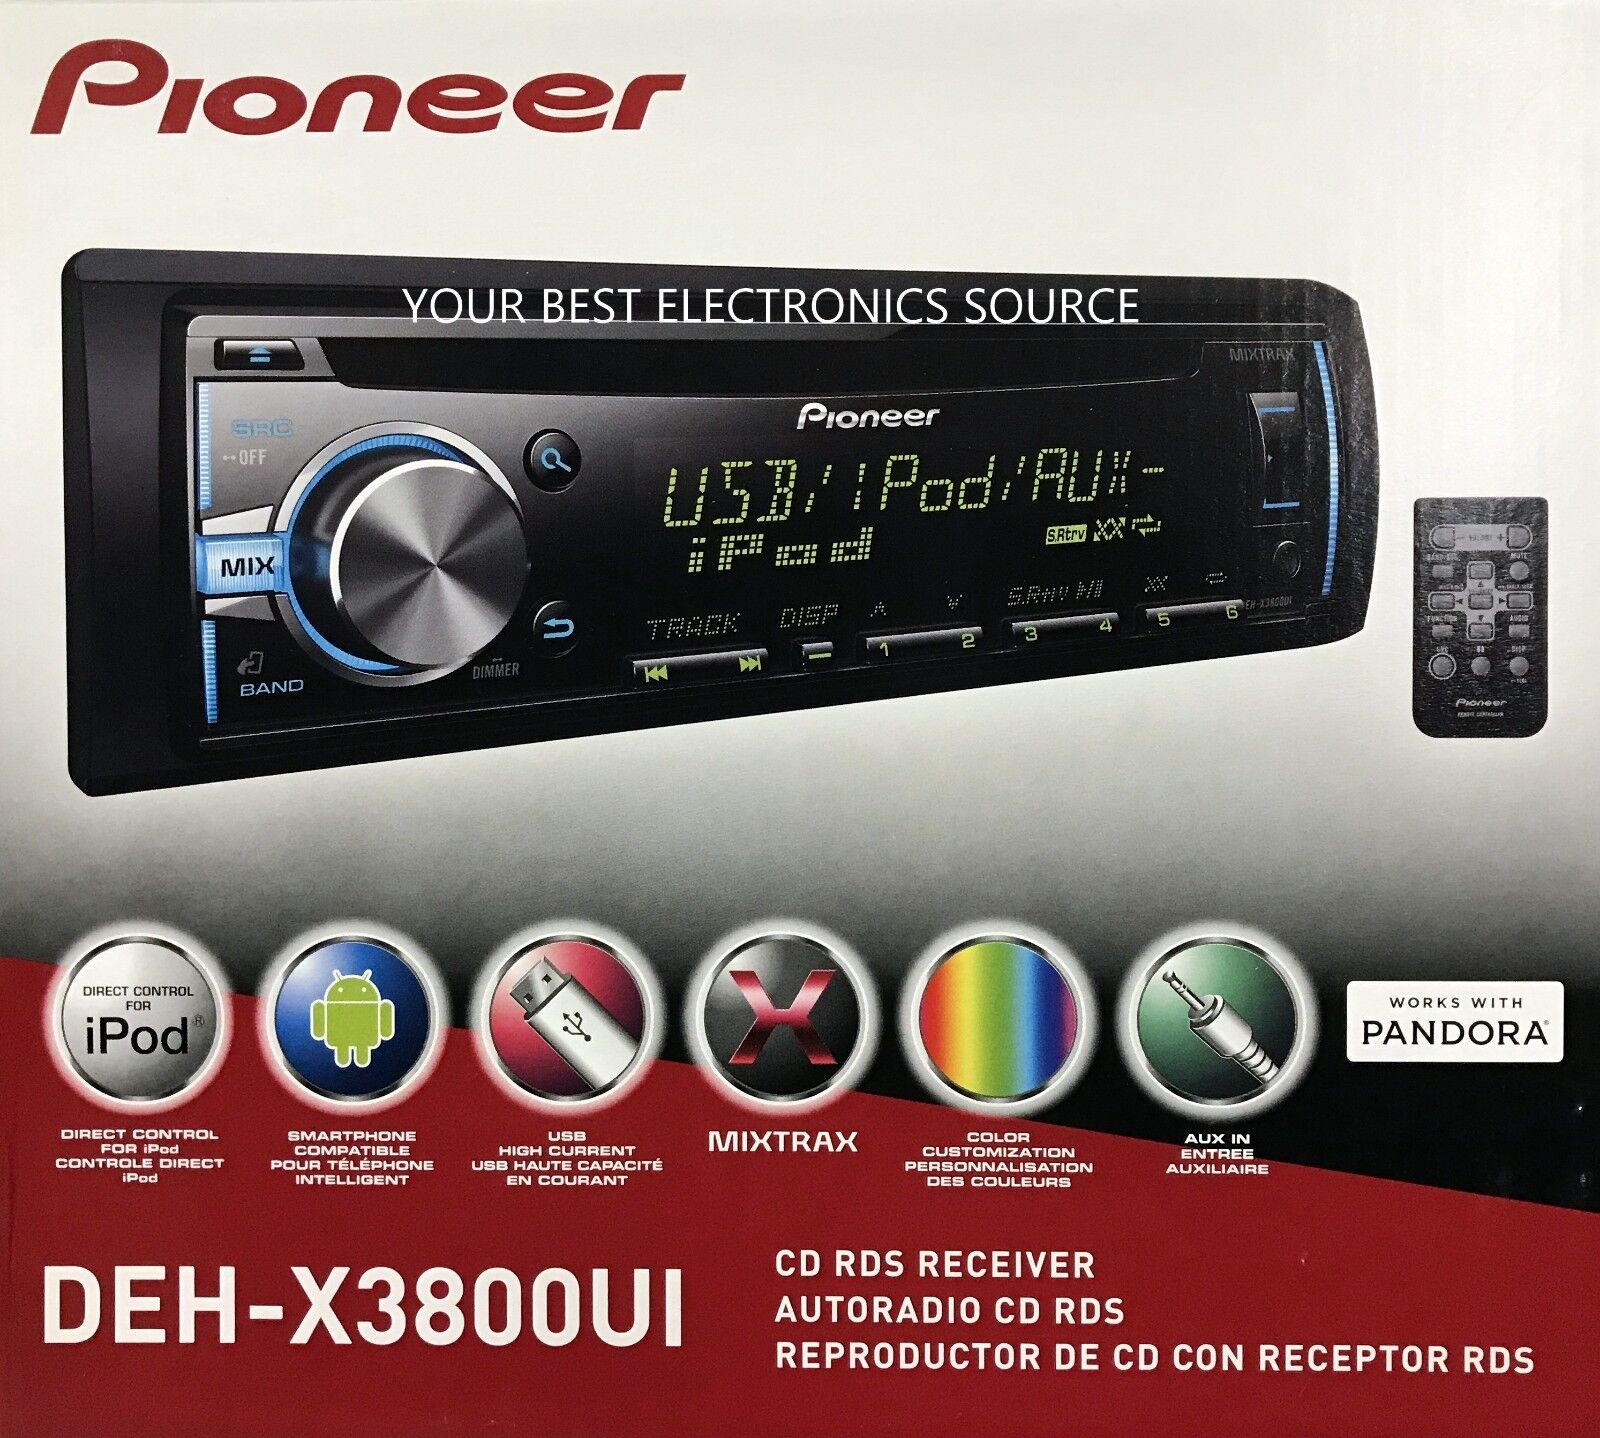 NEW Pioneer DEH-X3800UI CD/AM/FM Car Stereo w/ Android/iPod/iPhone Control, USB